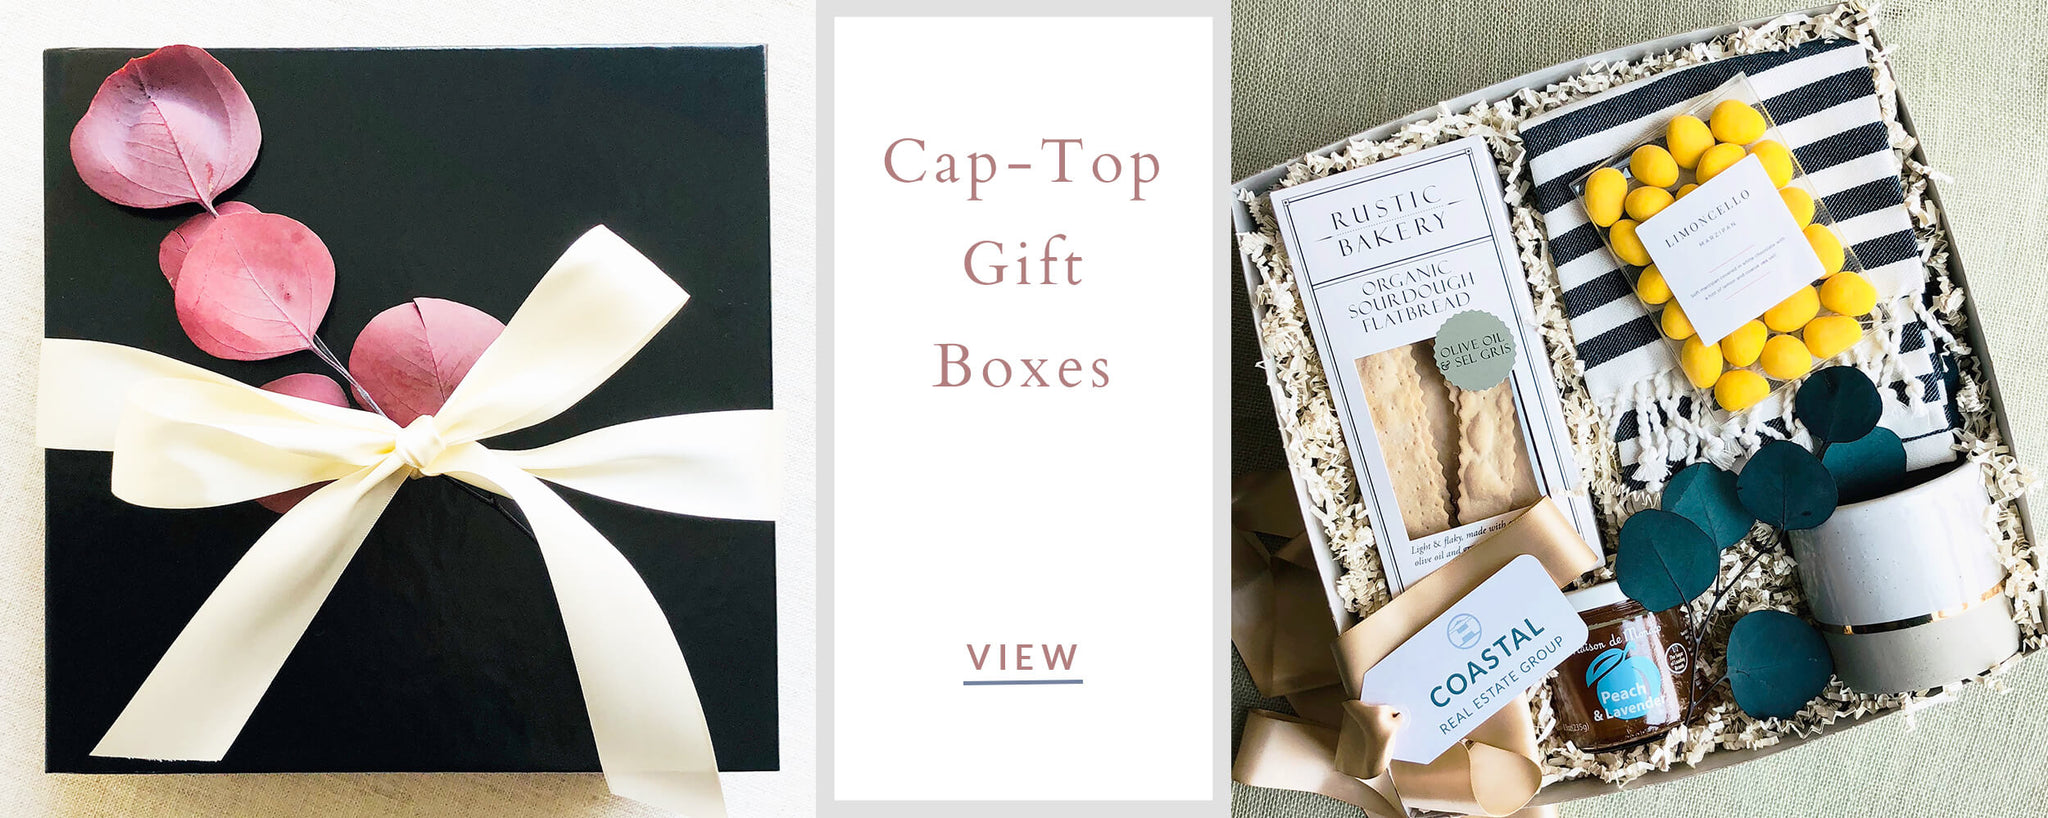 Custom Corporate Gifts - Cap Top Gift Boxes